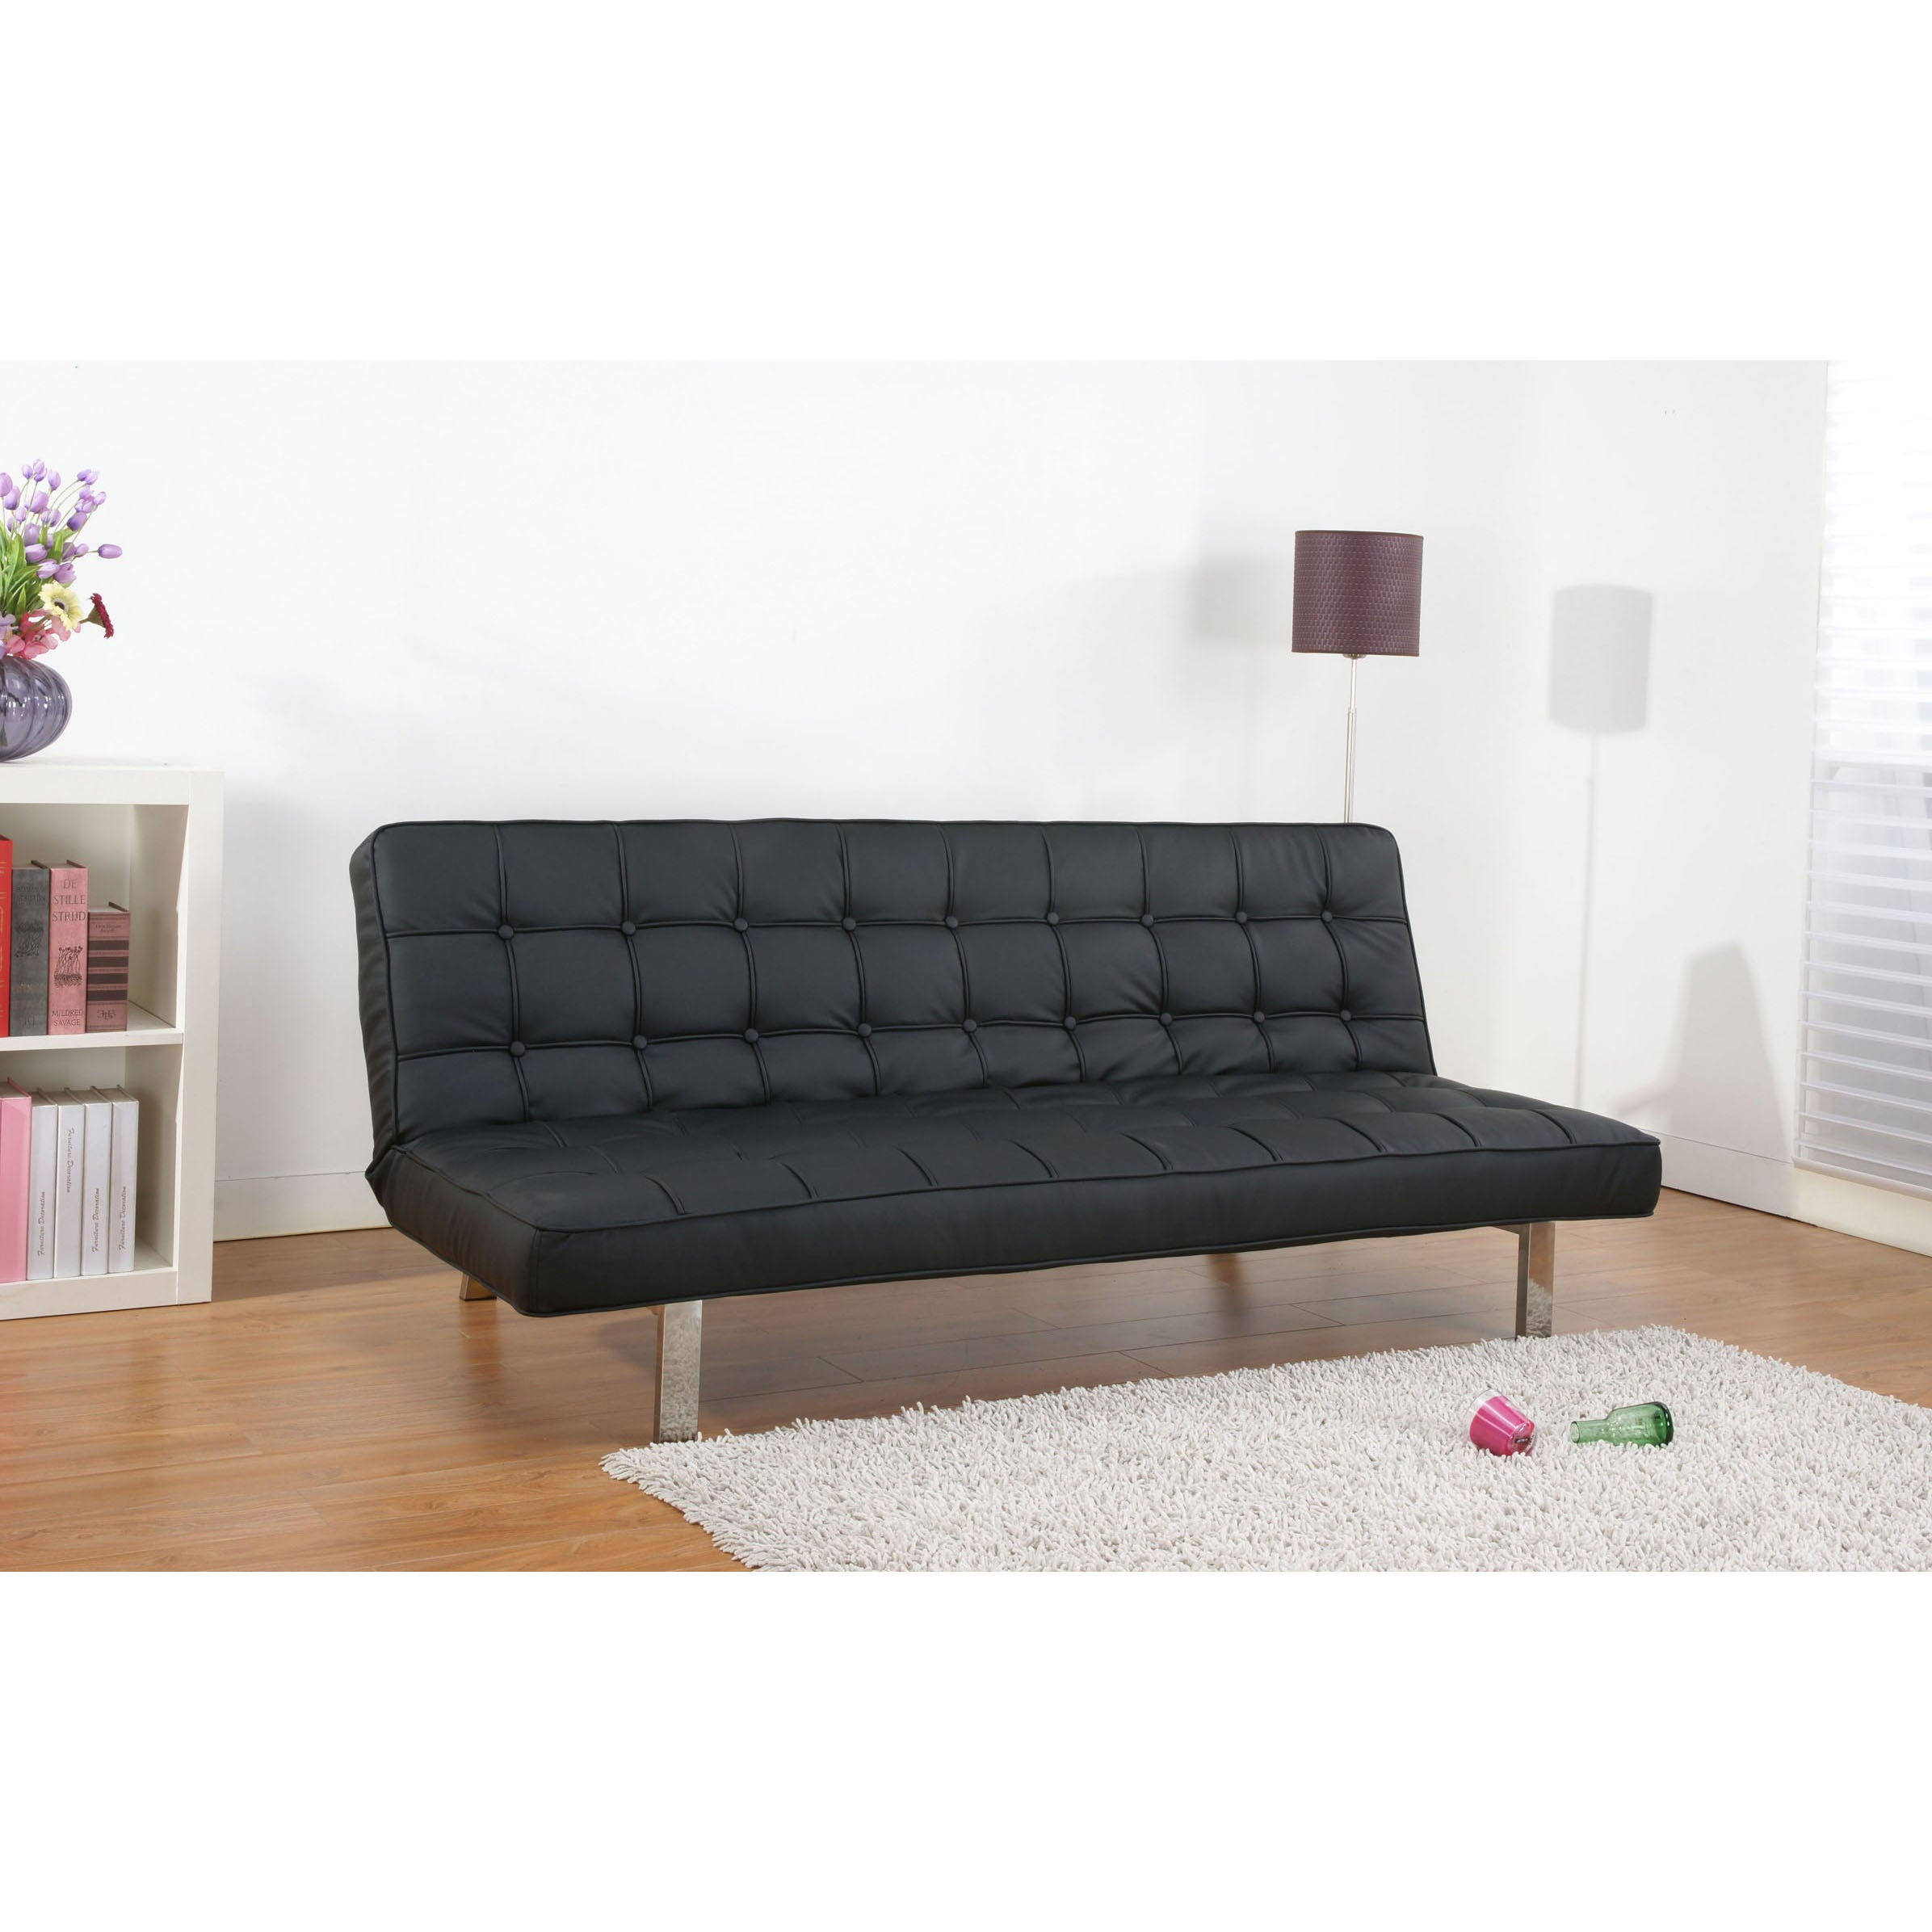 Vegas Black Futon Sofa Bed